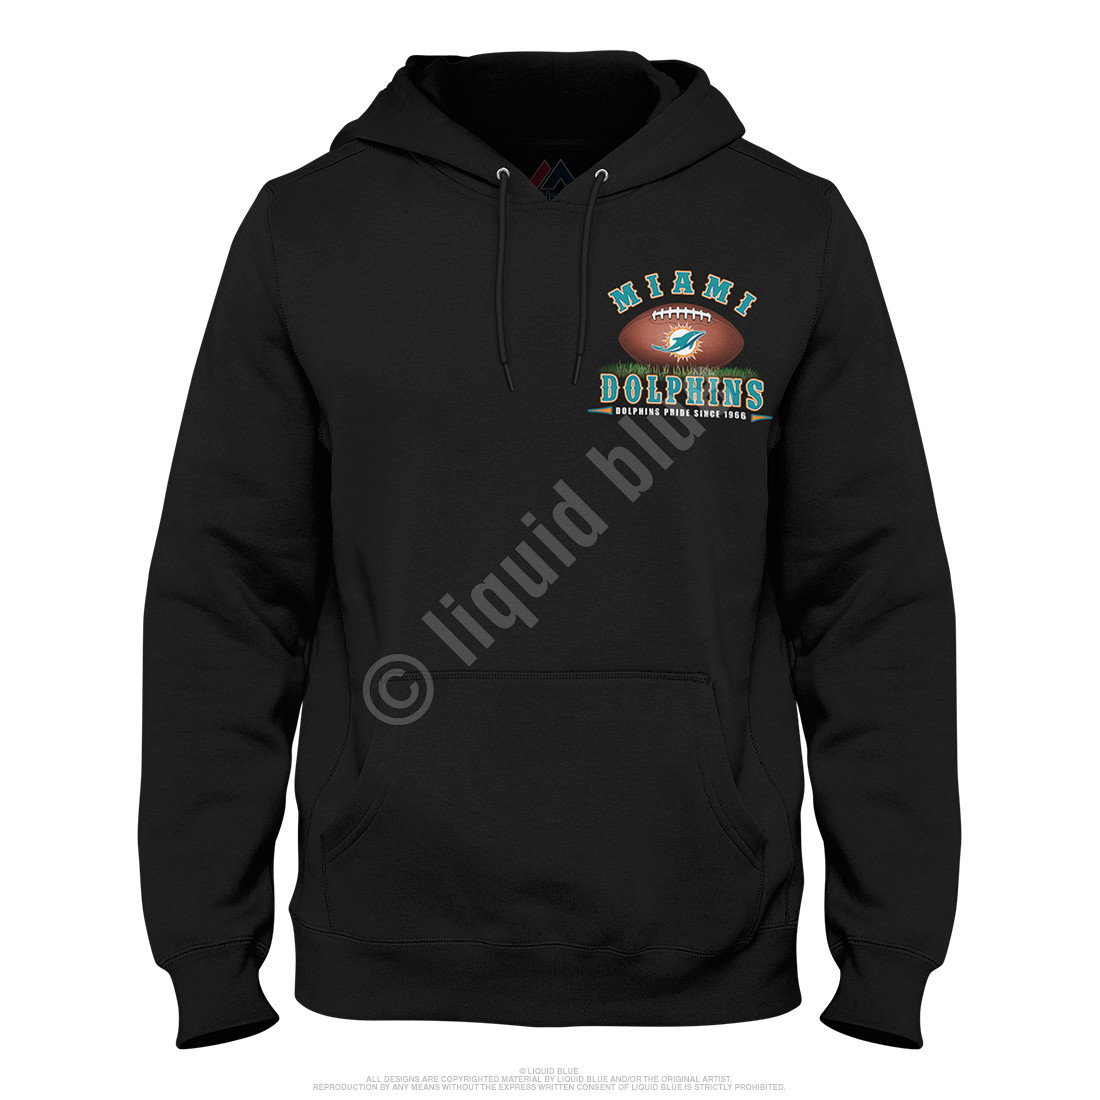 Miami Dolphins End Zone Black Hoodie